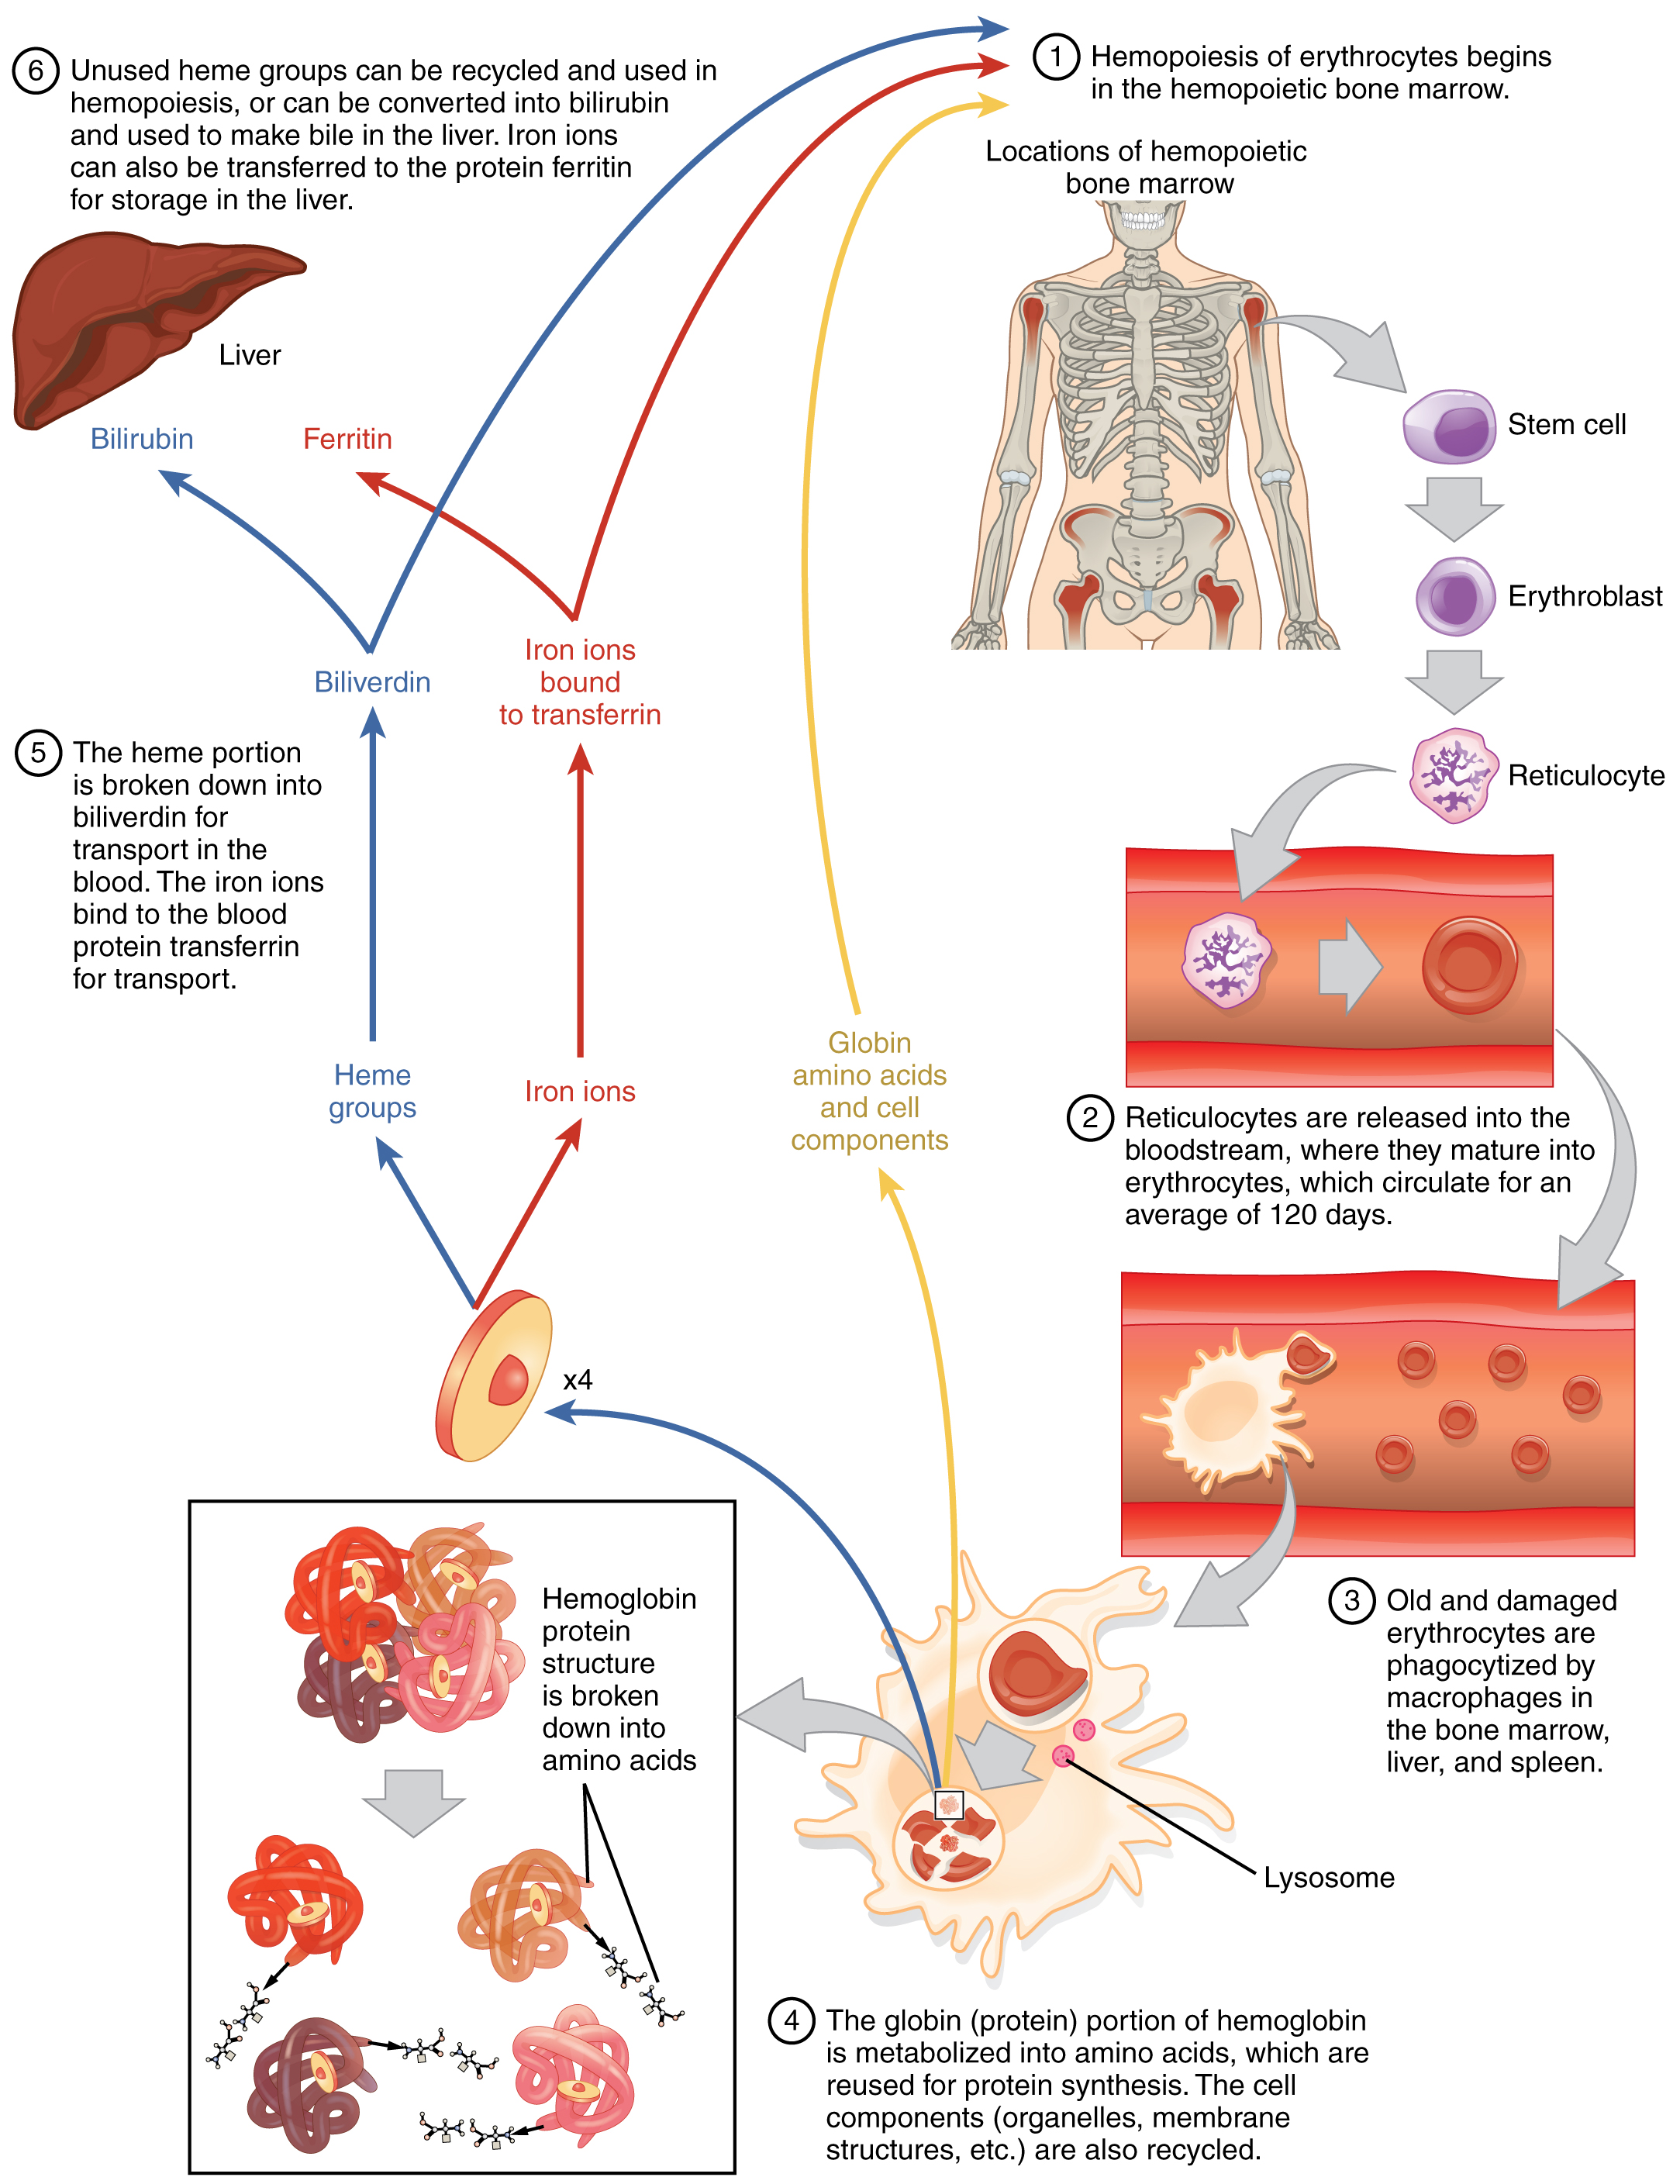 in adults erythrocytes are produced in the